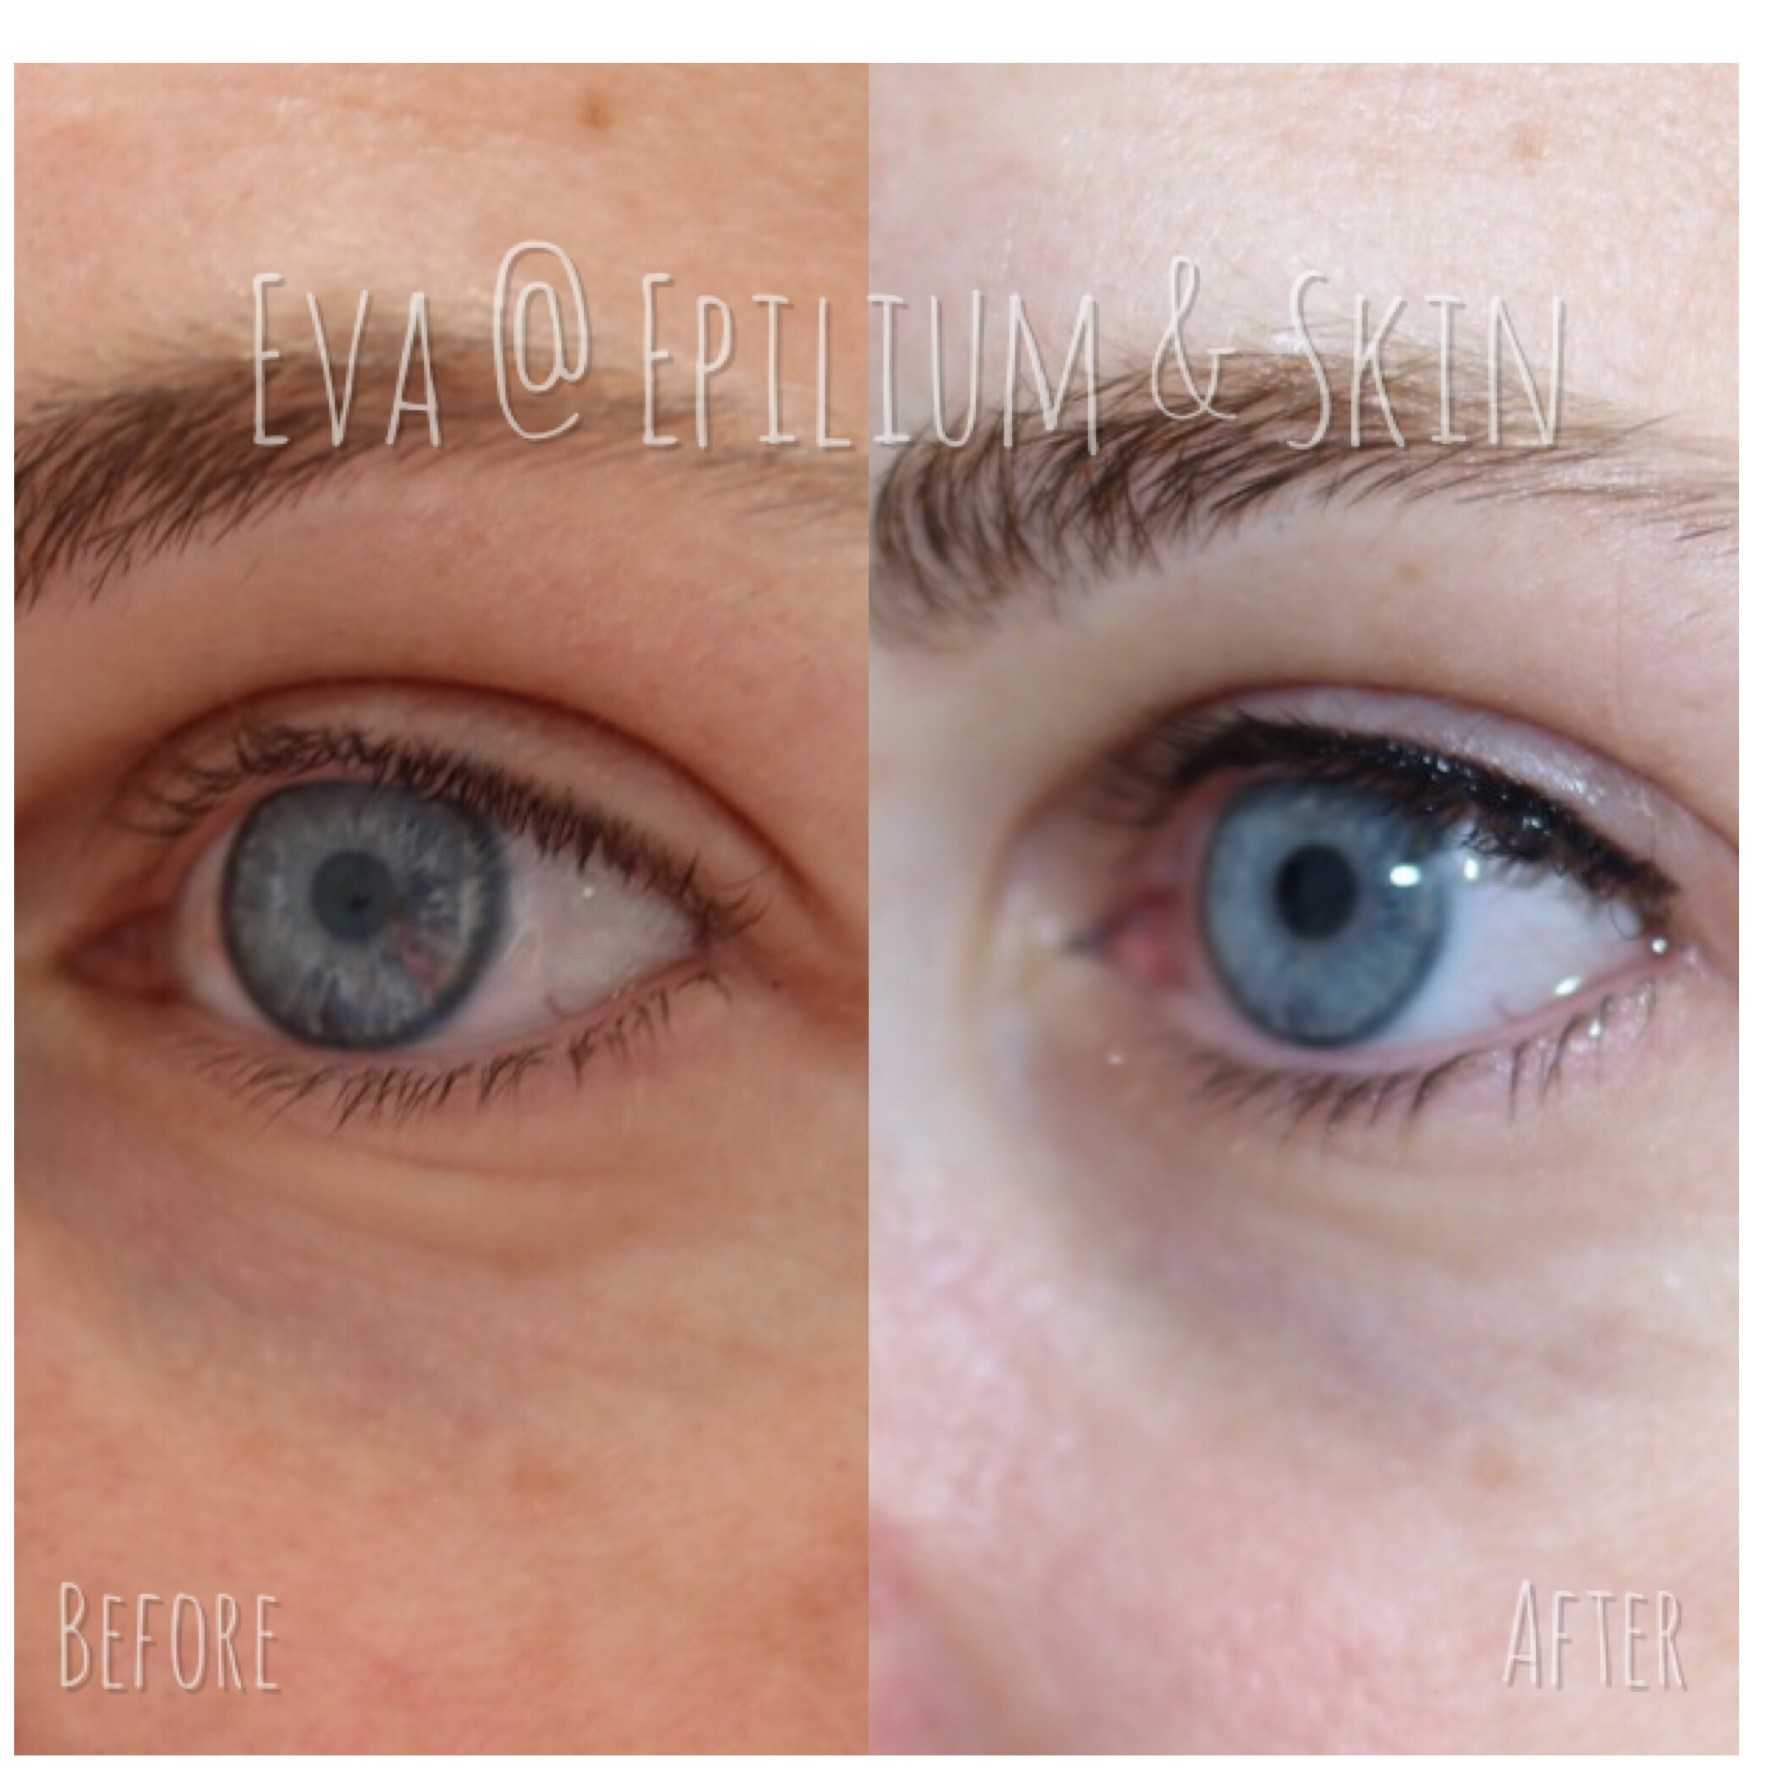 Before and after woman's eyes of permanent eyeliner tattoo